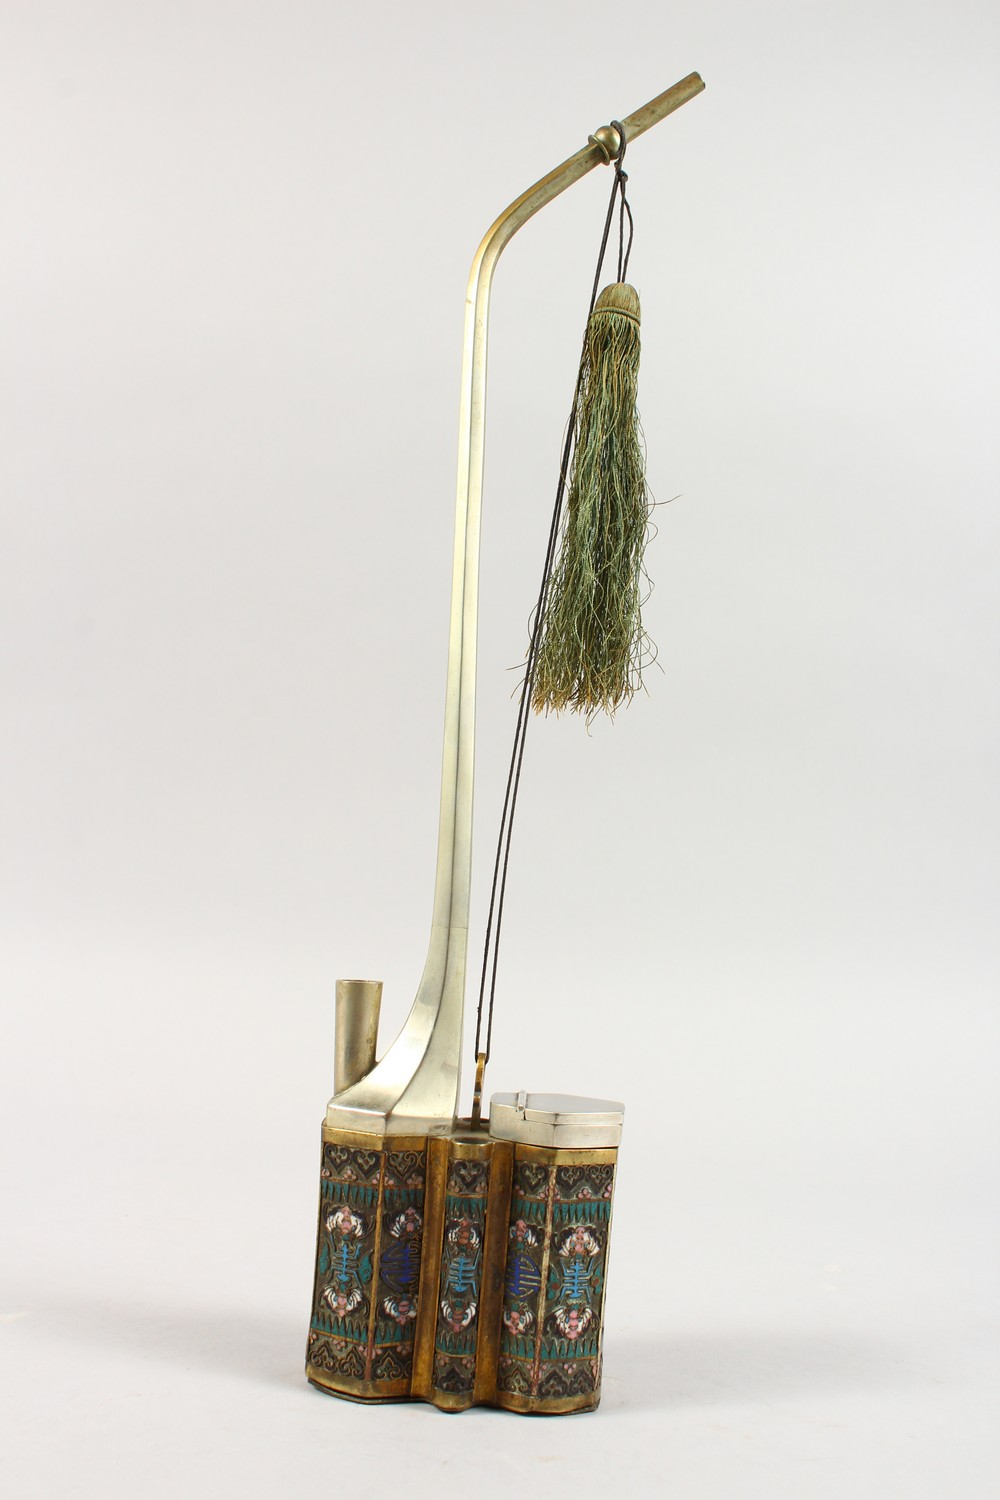 A GOOD 19TH / 20TH CENTURY CHINESE CLOISOINNE SMOKING PIPE, the side with decoration depicting - Image 2 of 9